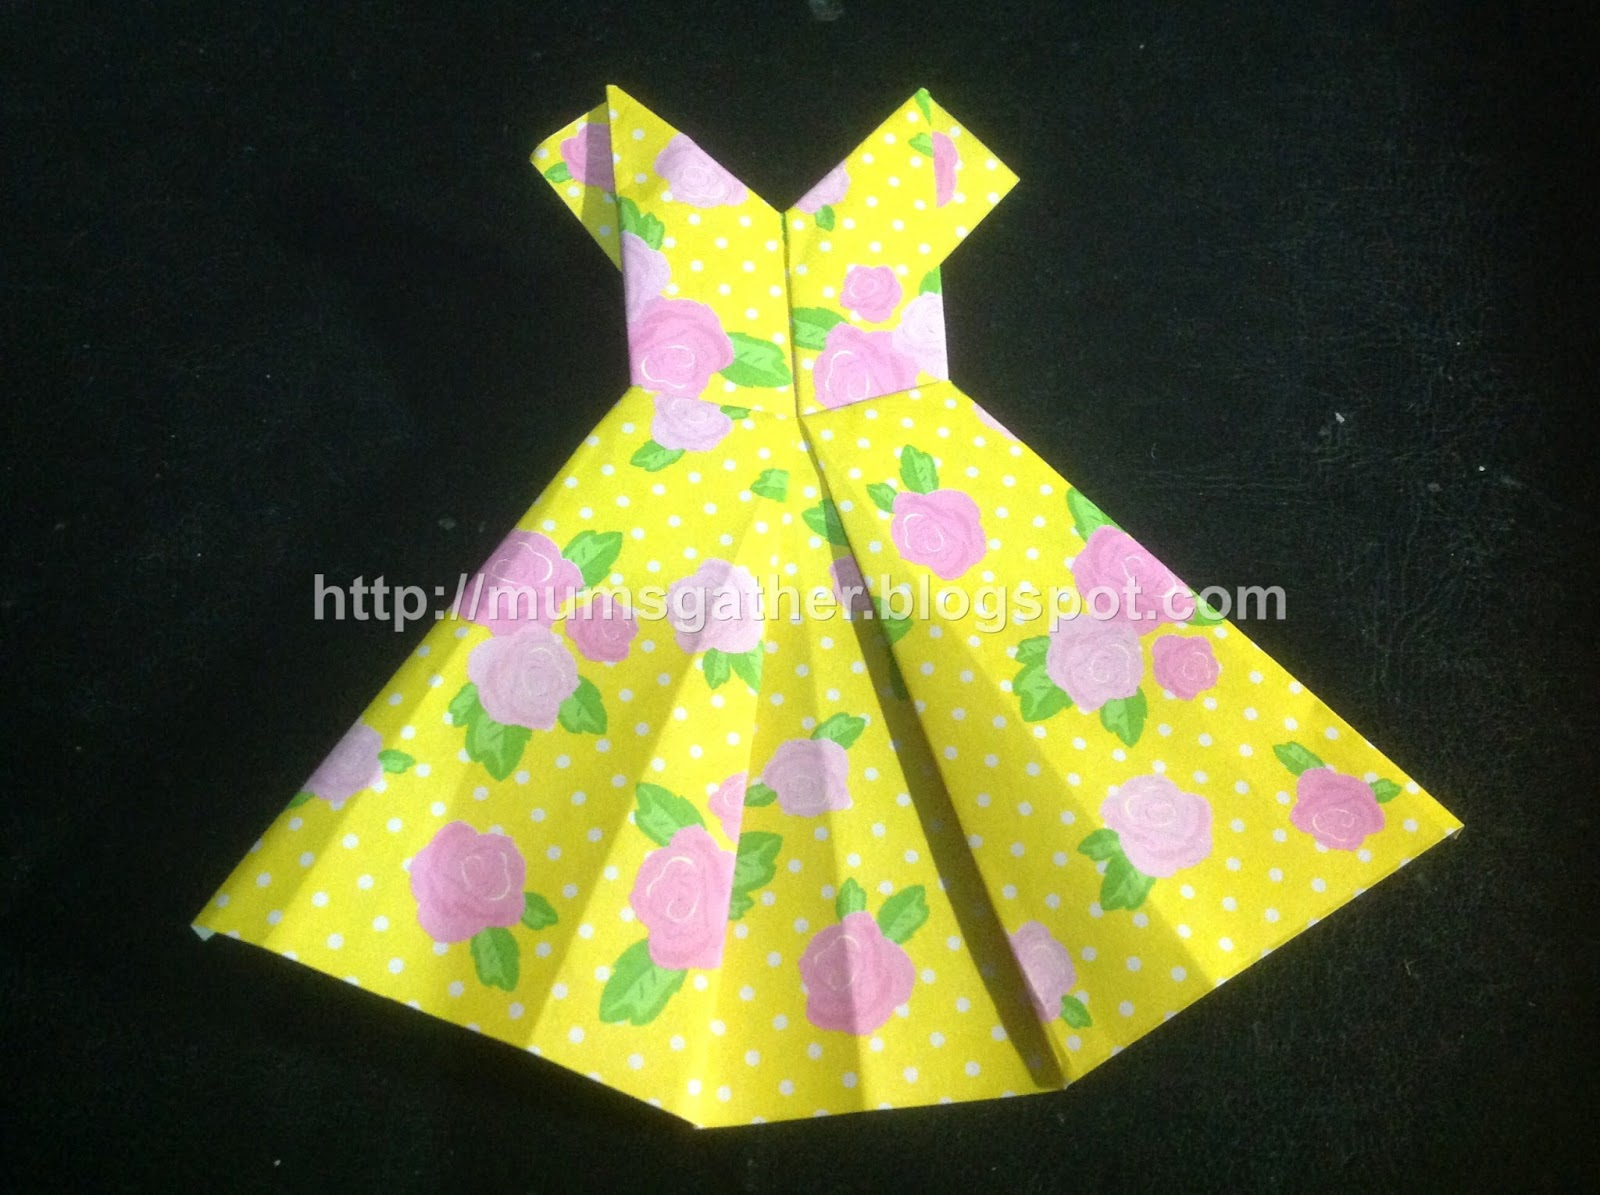 School holiday craft origami dress bookmark parenting times i saw someone make origami dresses previously and they look absolutely adorable i think these little origami dresses make excellent bookmarks or as gifts jeuxipadfo Choice Image